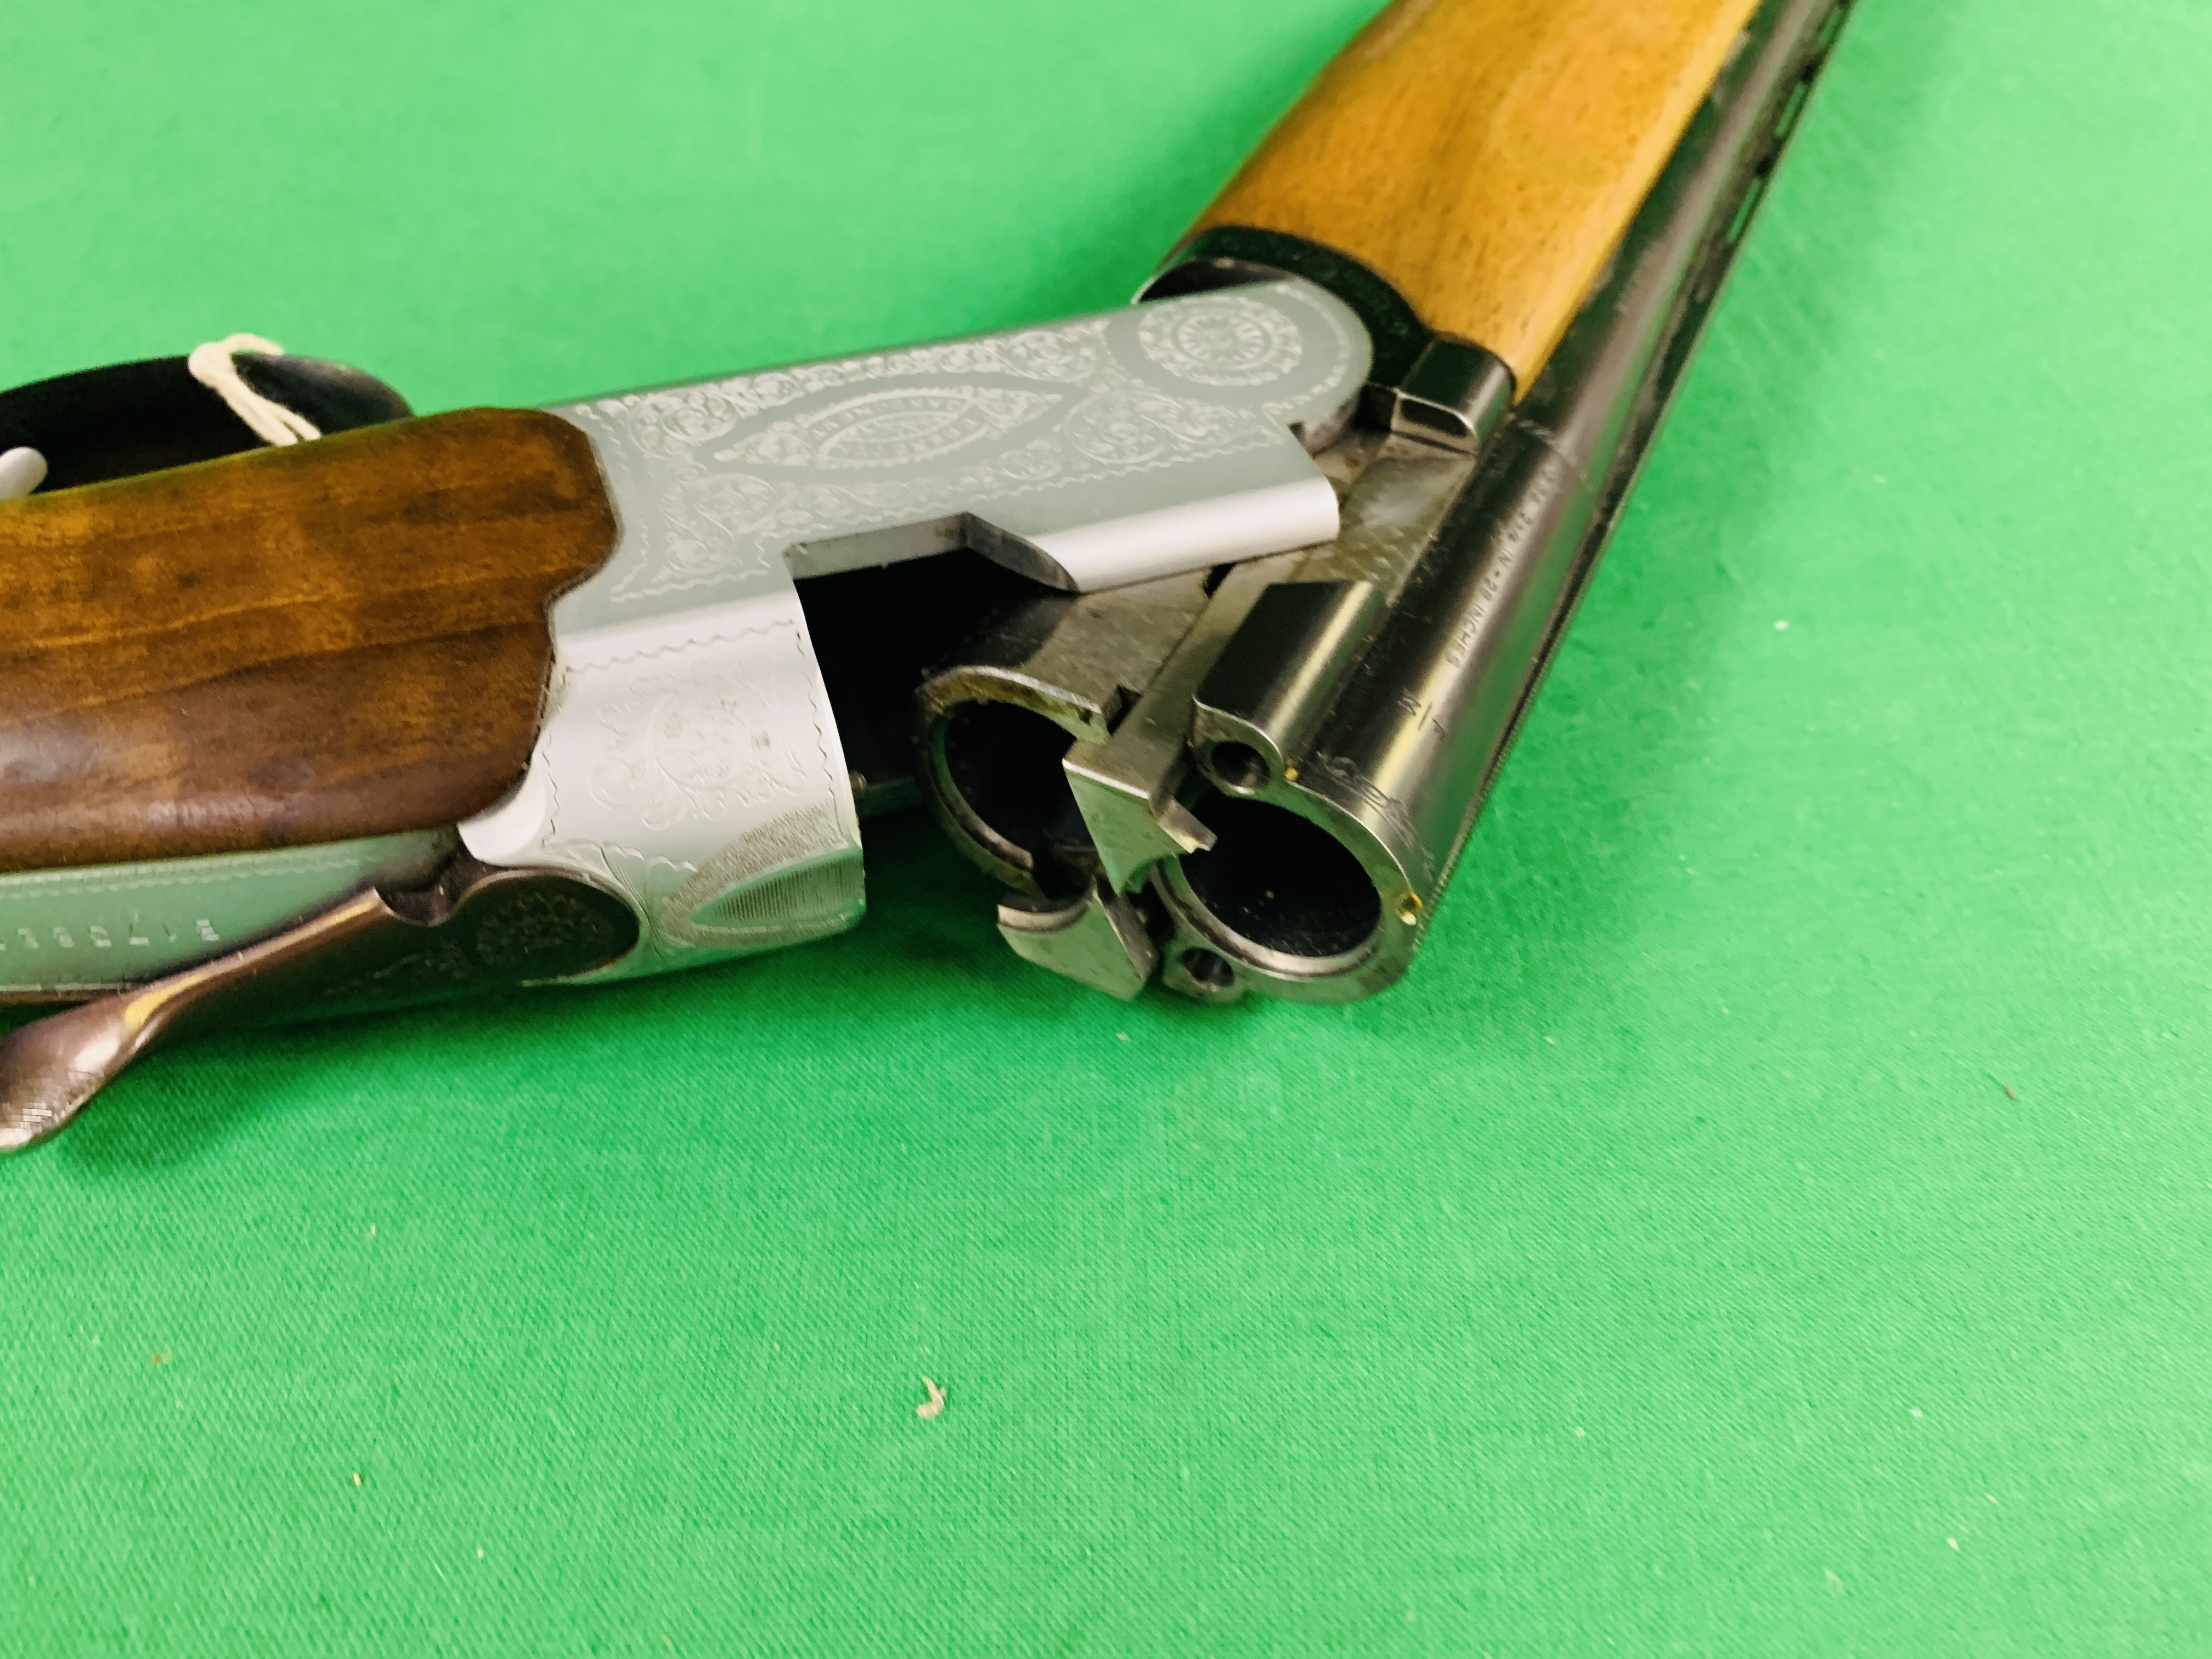 12 BORE BERETTA OVER AND UNDER SHOTGUN # B17388B WITH GUN SLEEVE - (ALL GUNS TO BE INSPECTED AND - Image 8 of 9